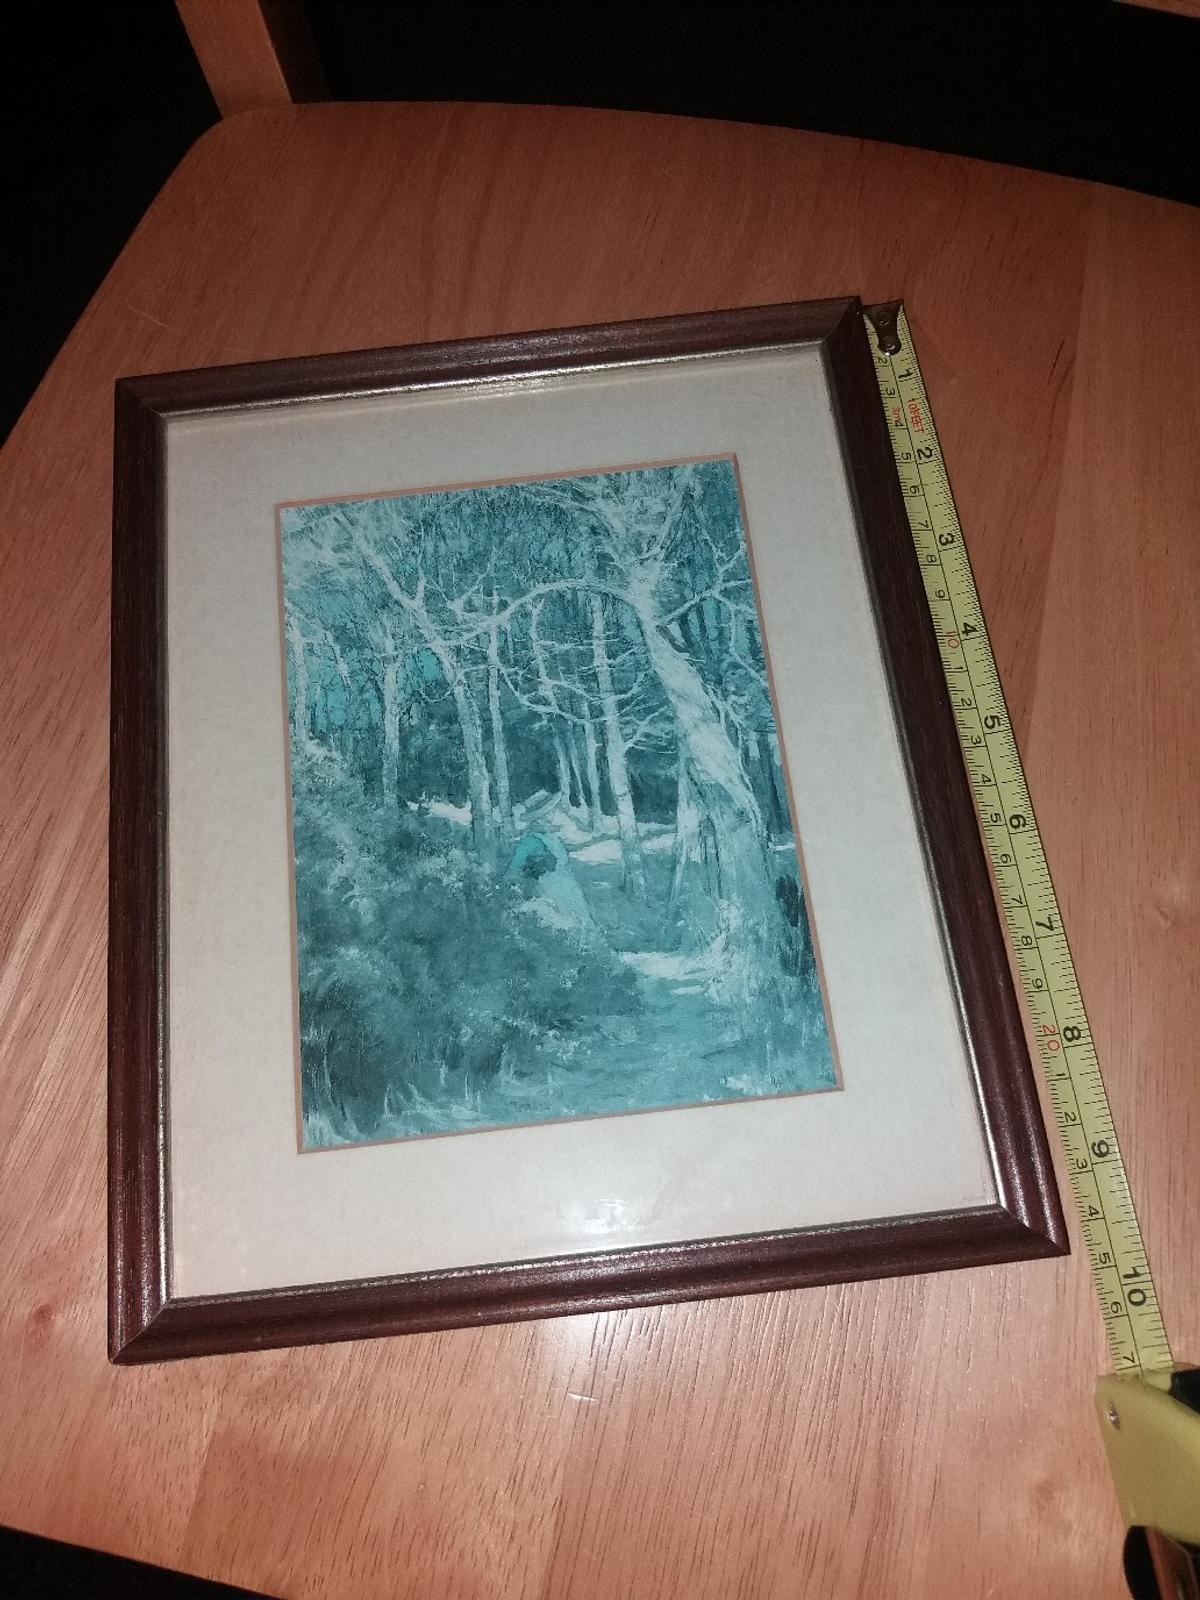 picture framed at Susan Peach Gallery see label on back for other info  frame measures 24.5cm by 20cm  collection after 6pm Monday to Friday unable to deliver  postage is extra if posting